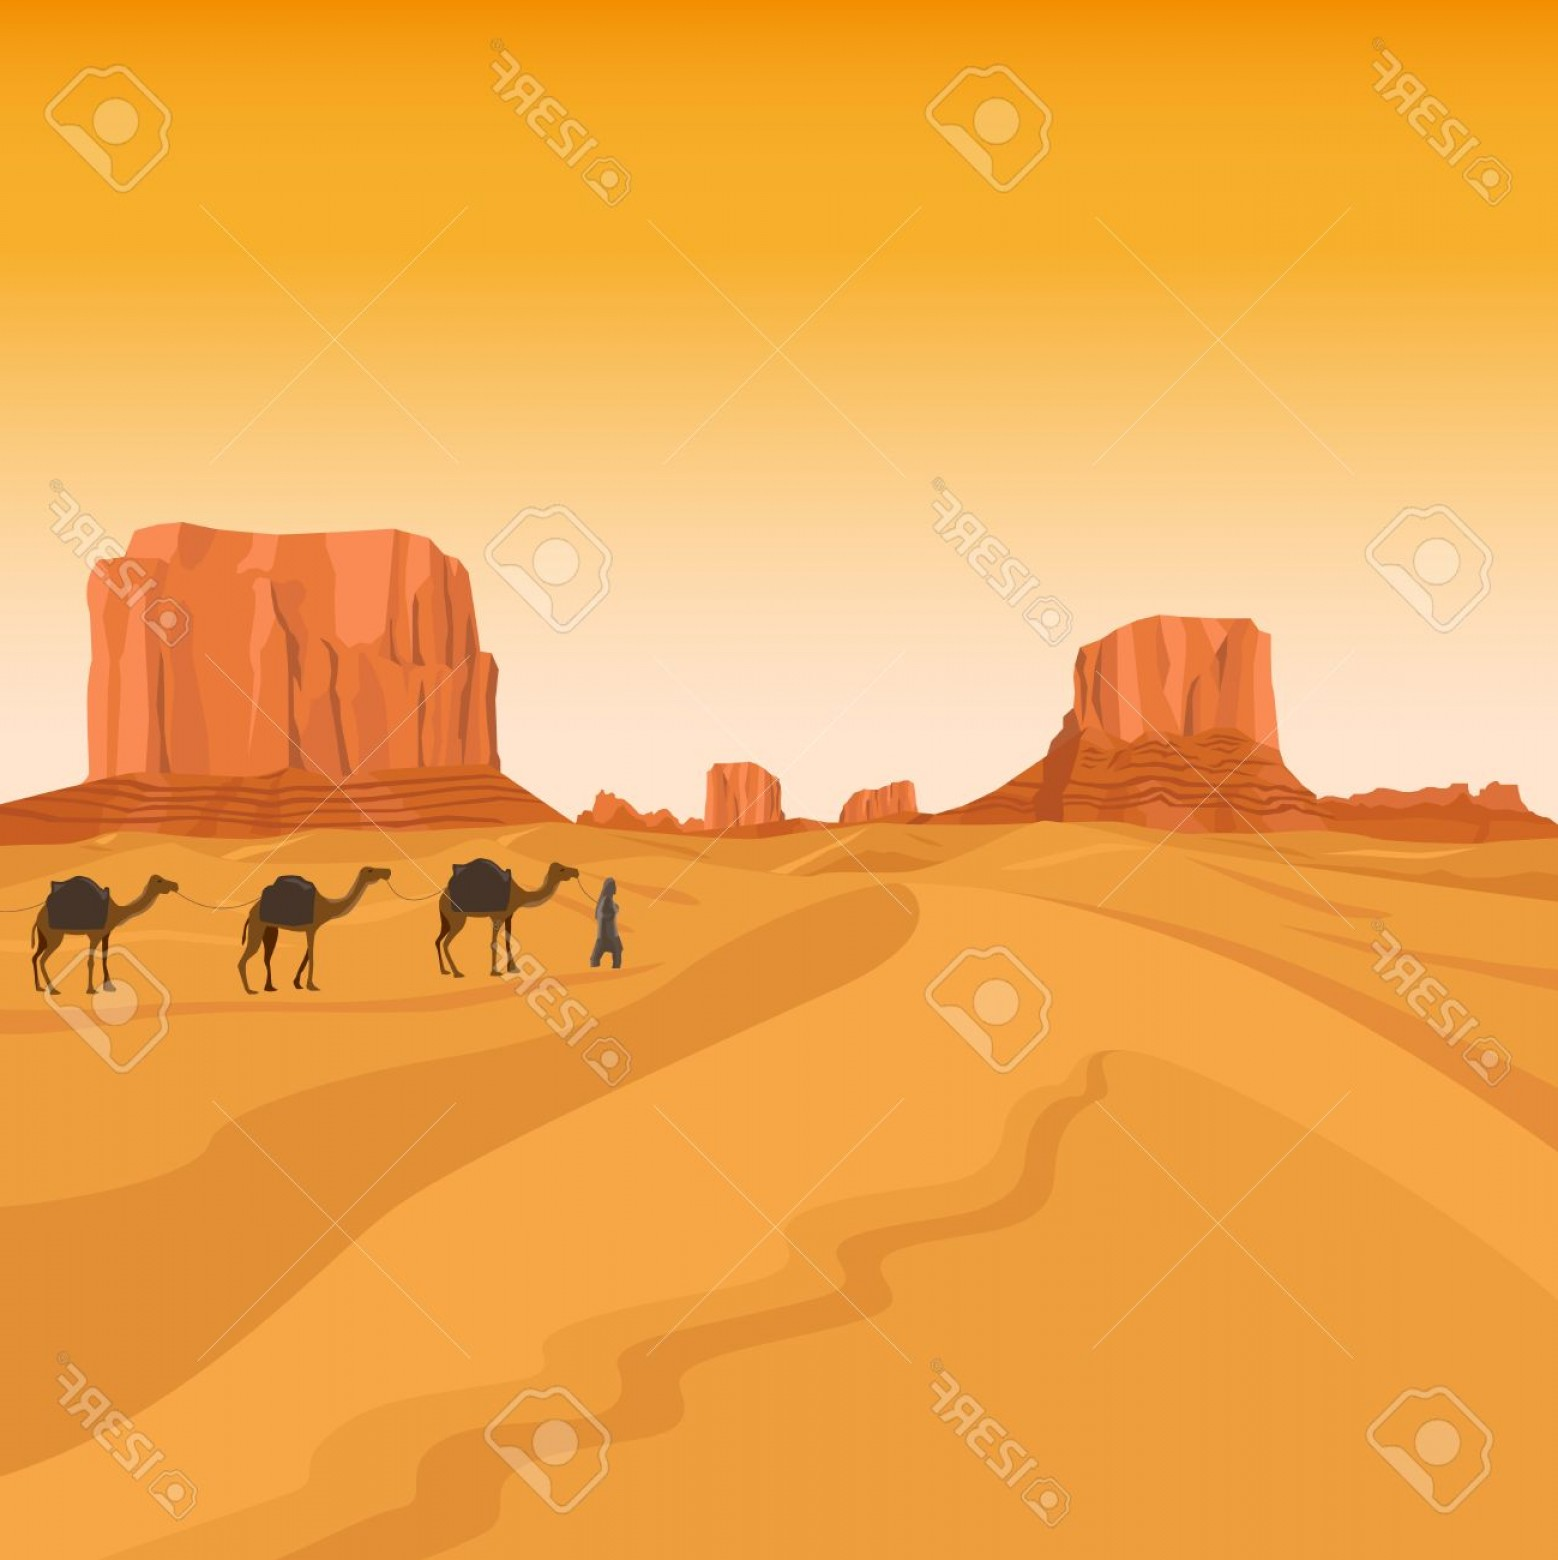 Sand Dune Silhouettes Vectors: Photostock Vector Egypt Sahara Desert With Sand Hills And Camel Caravan Silhouettes Vector Background